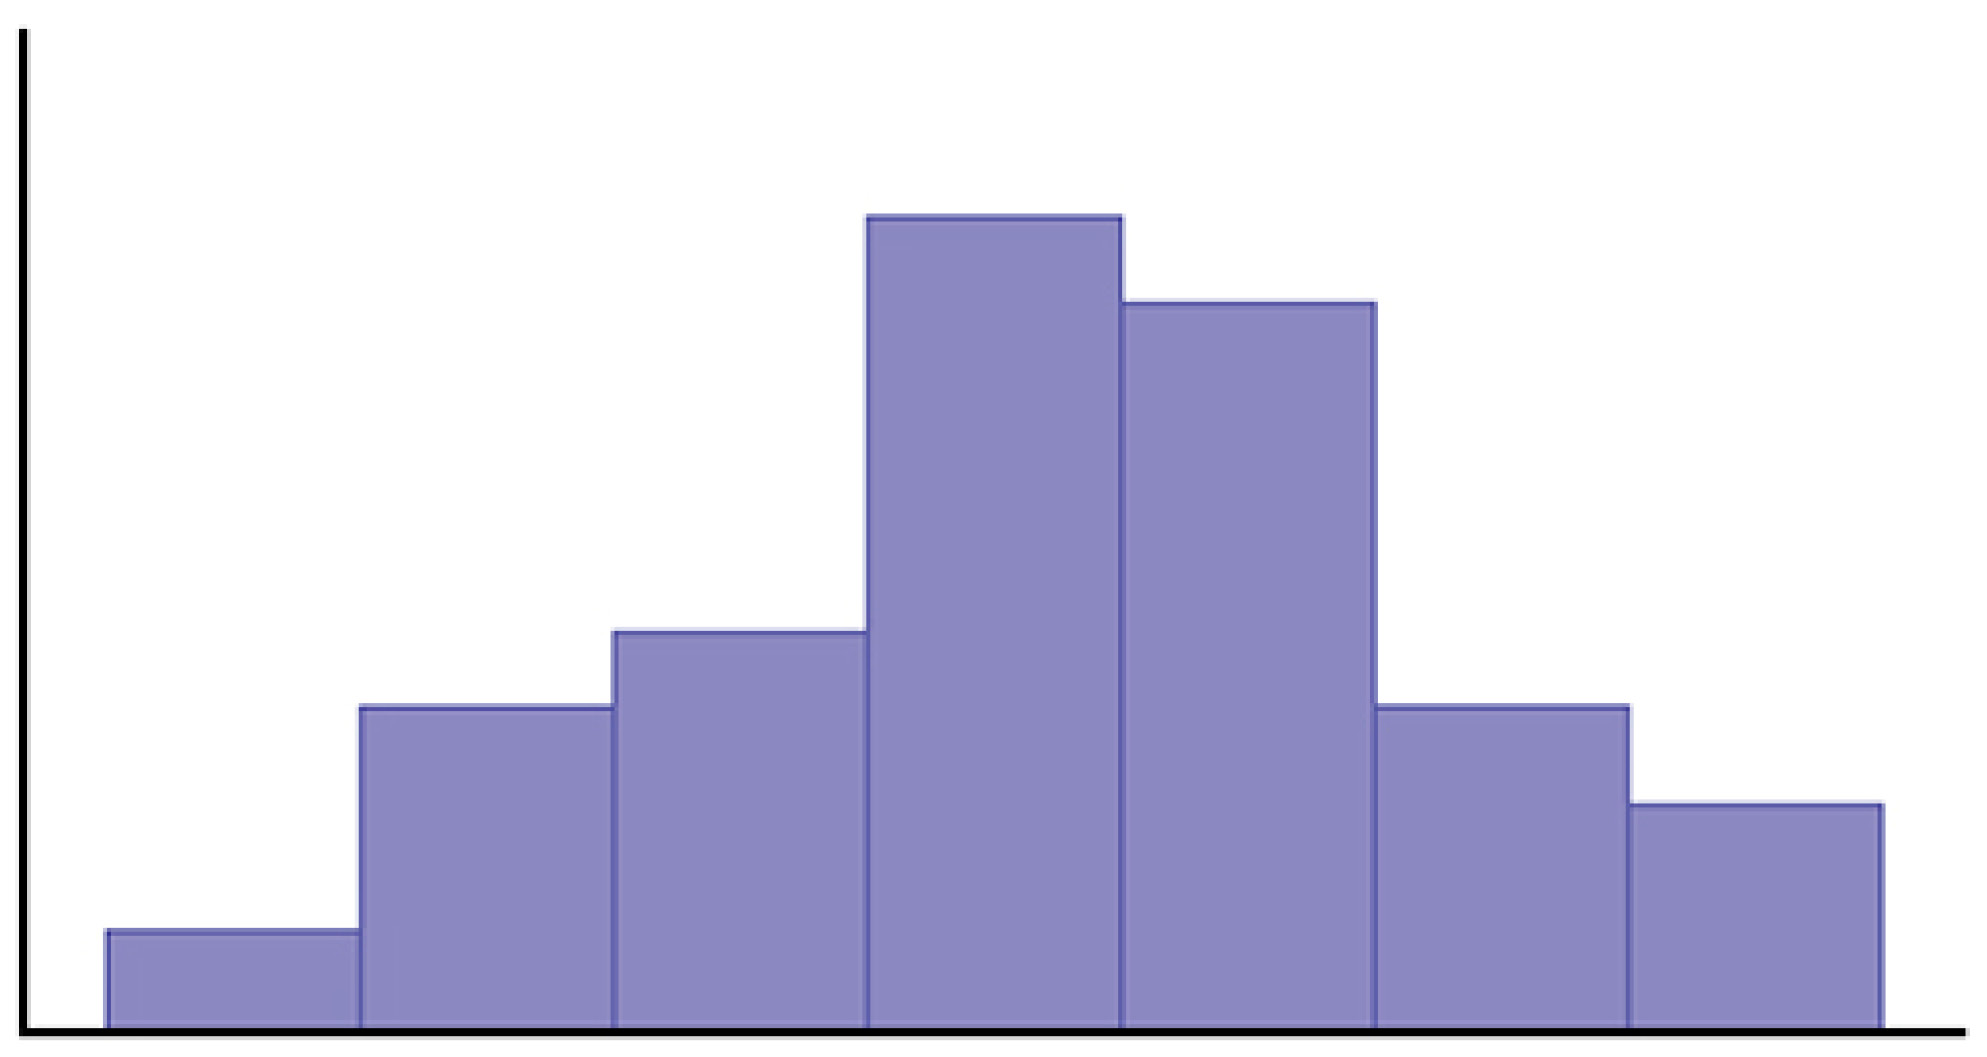 This graph is an unlabeled histogram. The distribution is roughly symmetric. There is a single peak in the center of the graph and heights of bars decrease from that point toward each end of the graph.